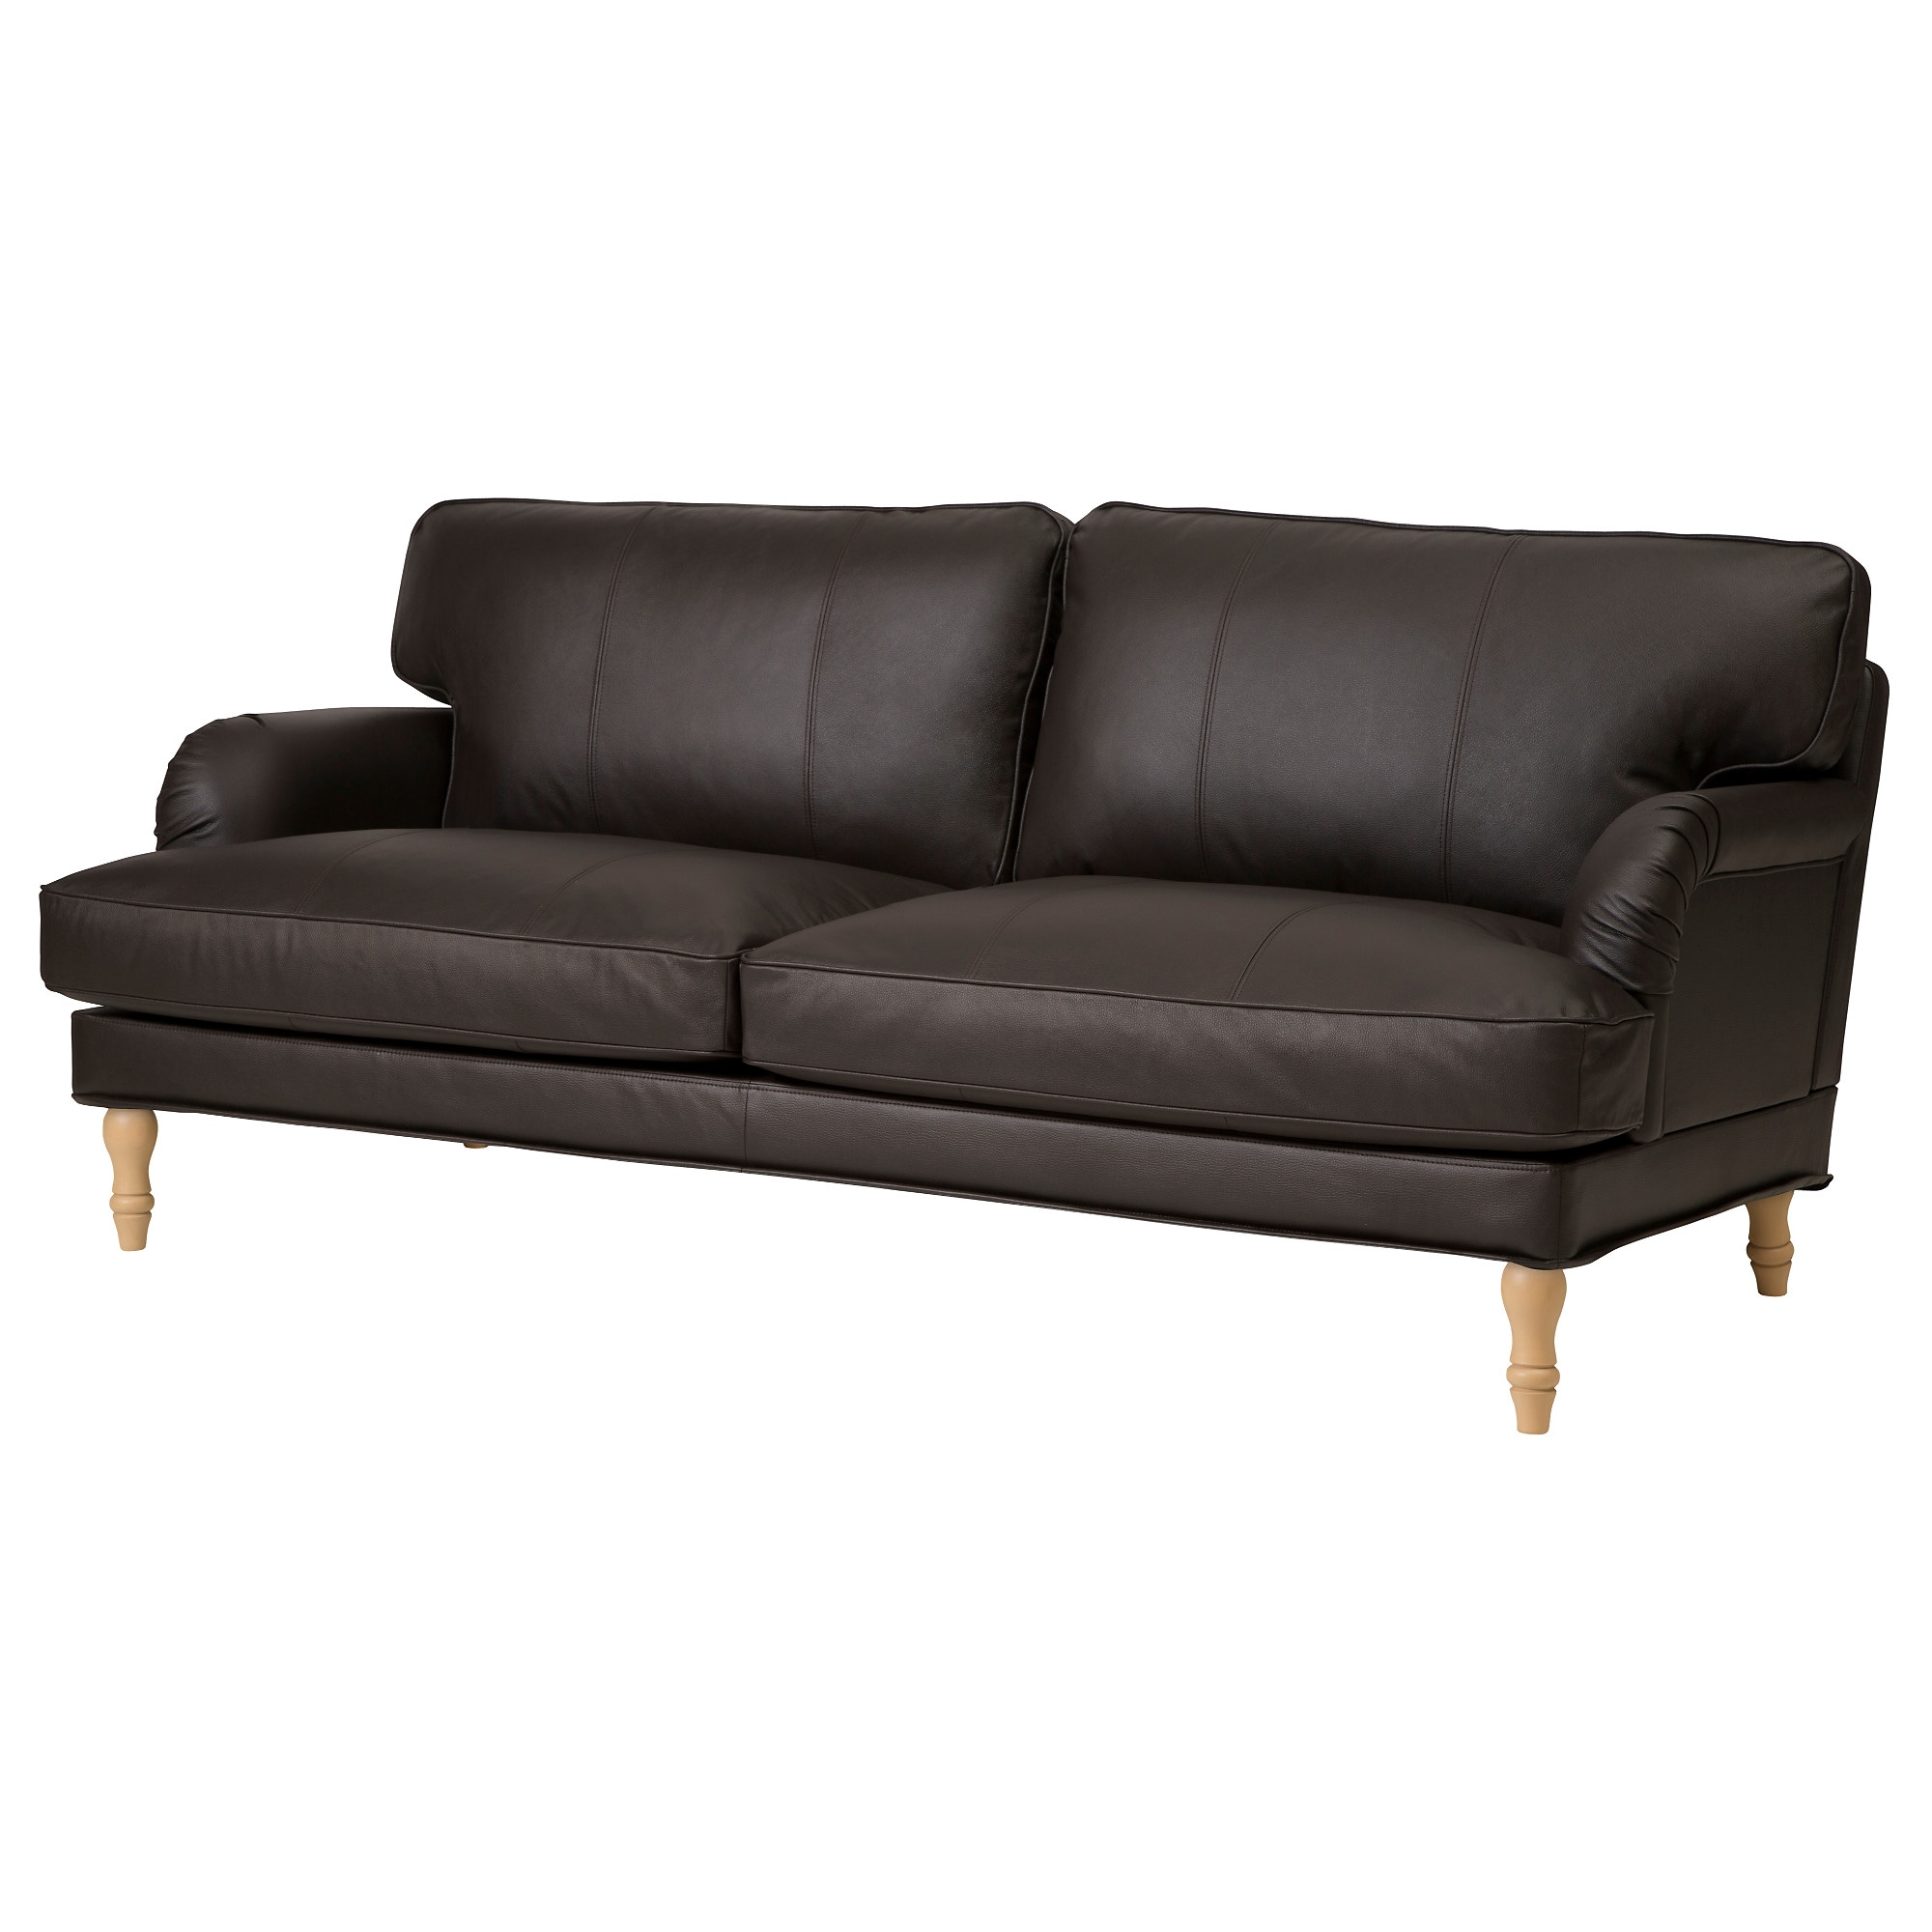 Ordinaire STOCKSUND Sofa